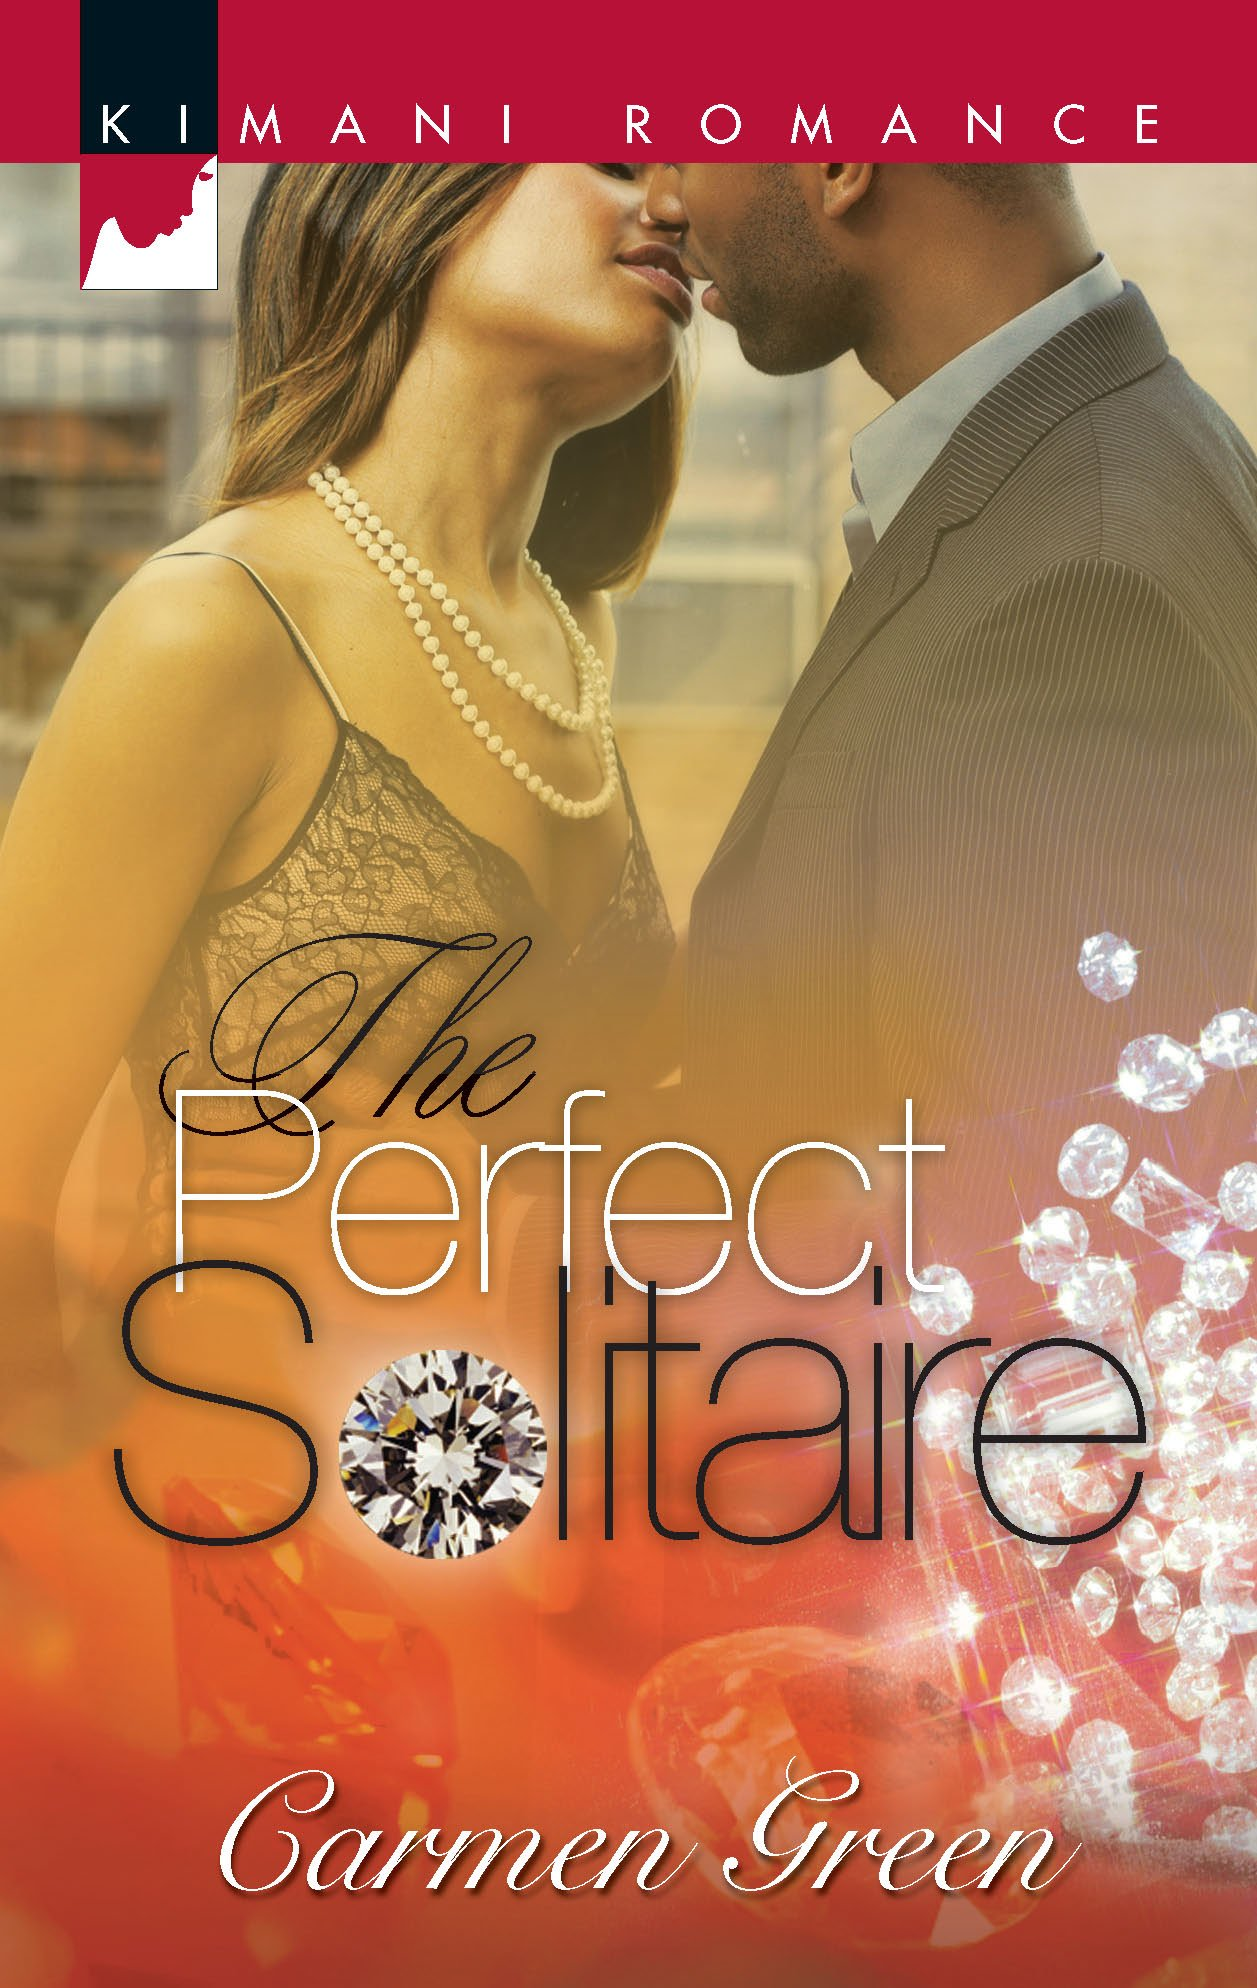 Buy The Perfect Solitaire (Kimani Romance) Book Online at Low Prices in  India | The Perfect Solitaire (Kimani Romance) Reviews & Ratings - Amazon.in